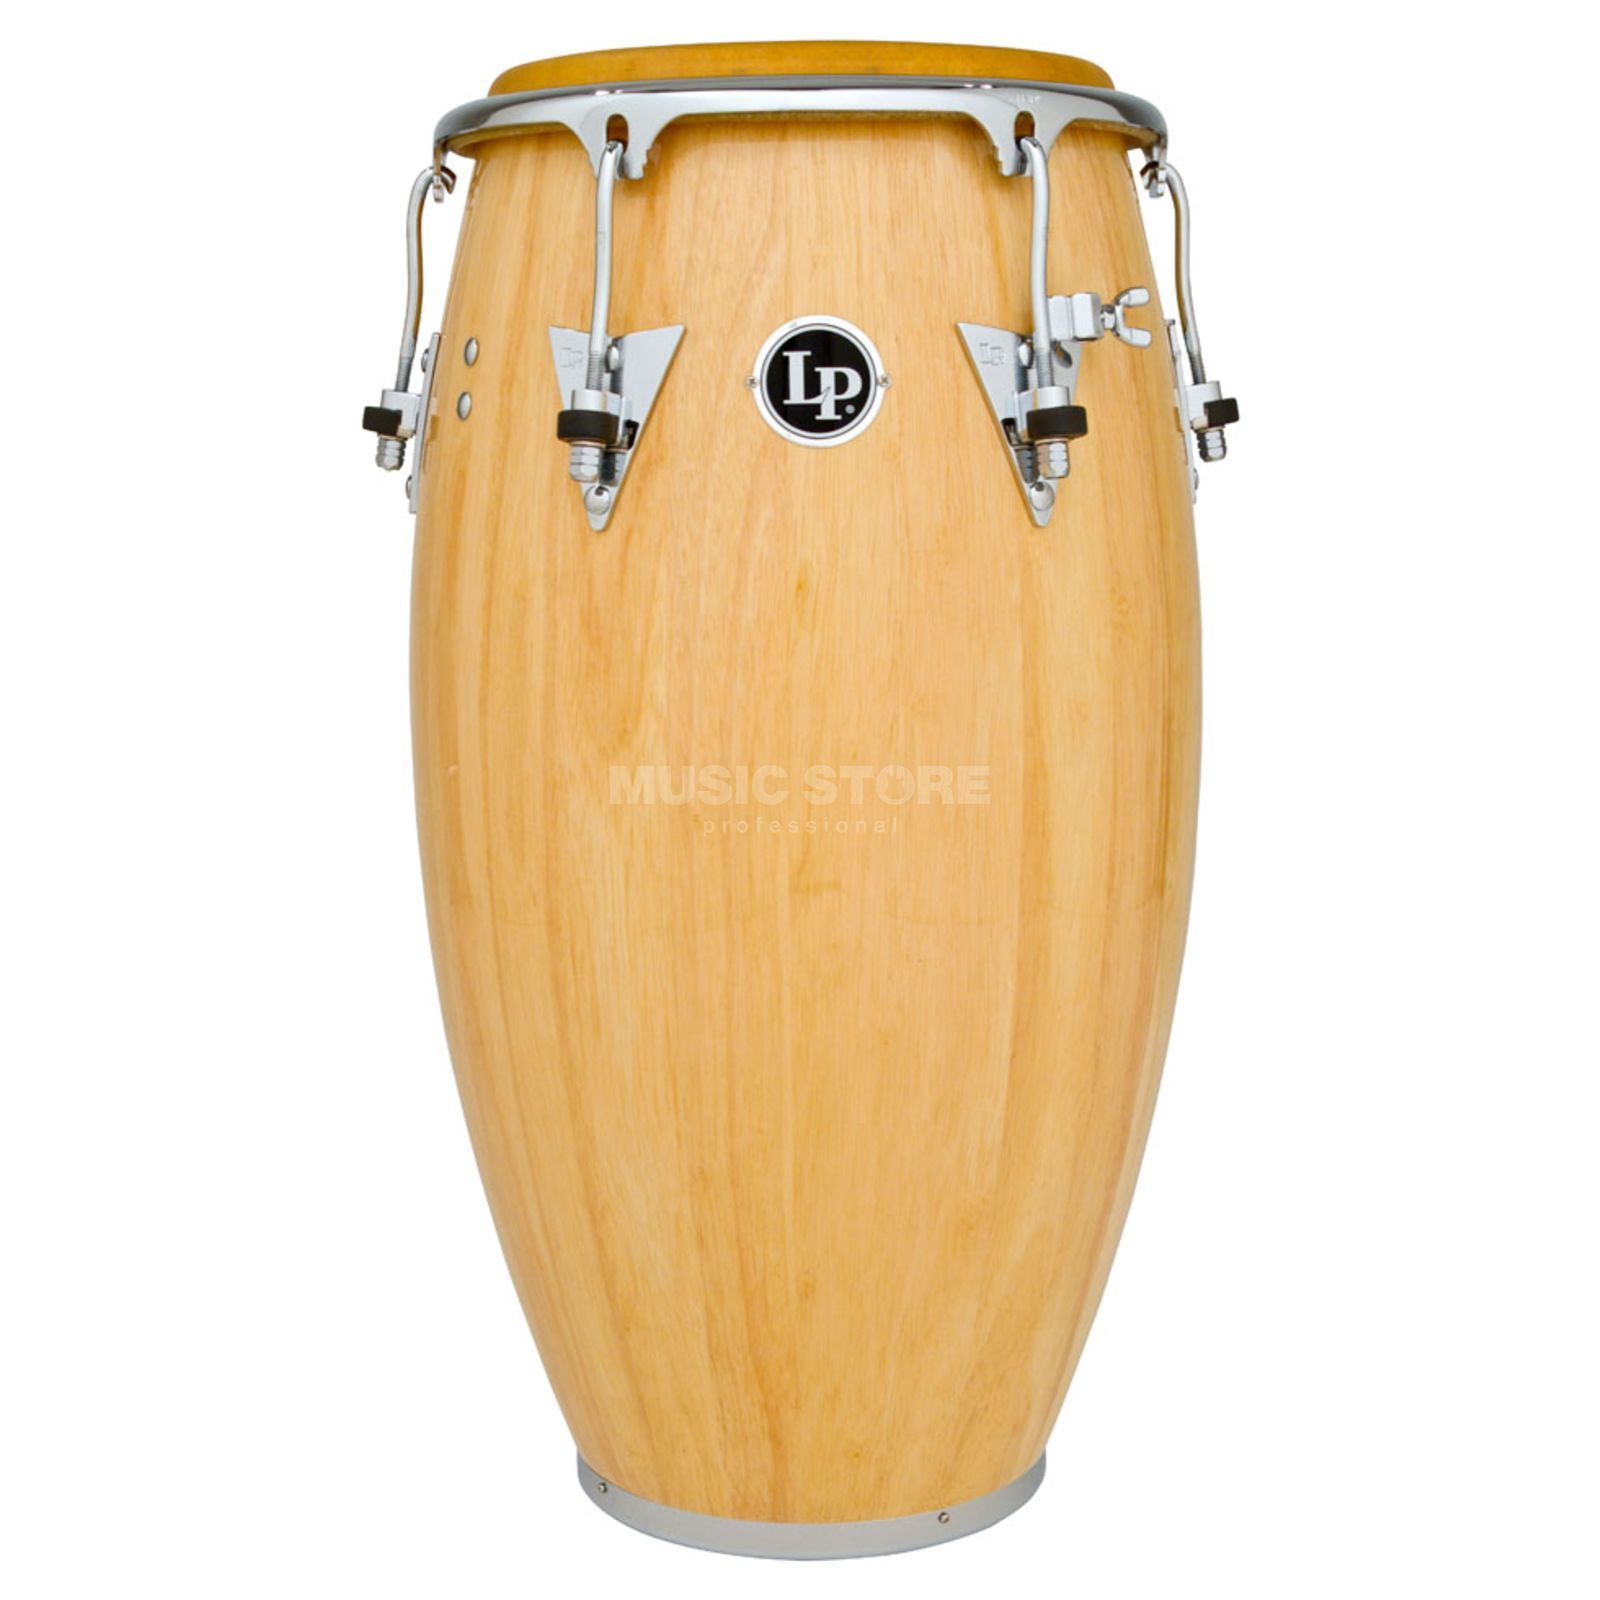 "Latin Percussion Salsa Conga LP259X-AWC, 11 3/4"" Conga, Natural Изображение товара"